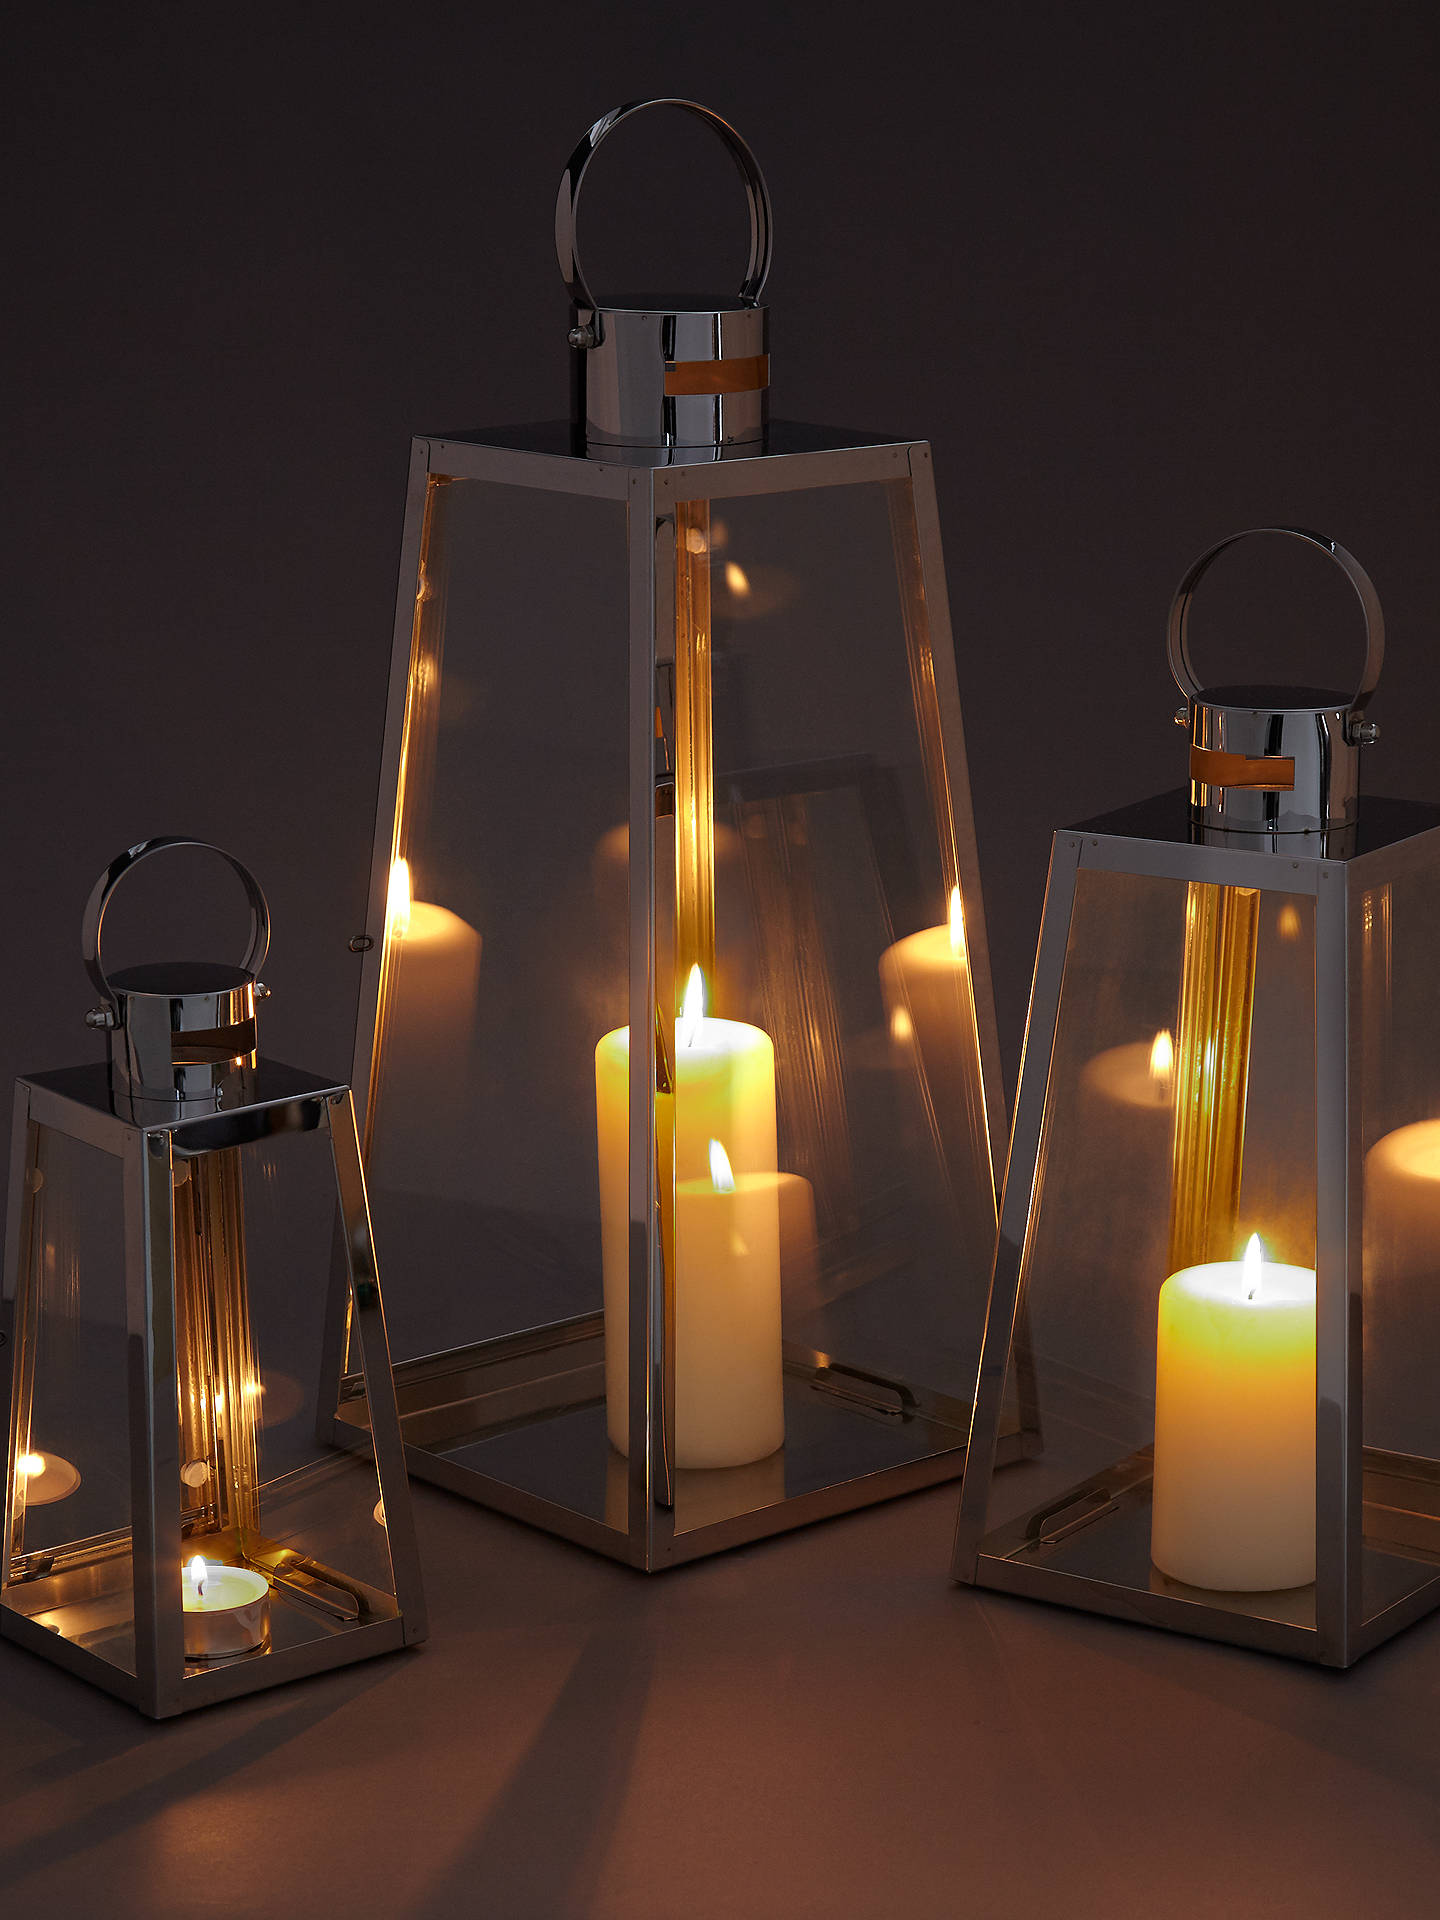 Buy John Lewis & Partners Pimlico Aluminium Lanterns, Set of 3 Online at johnlewis.com